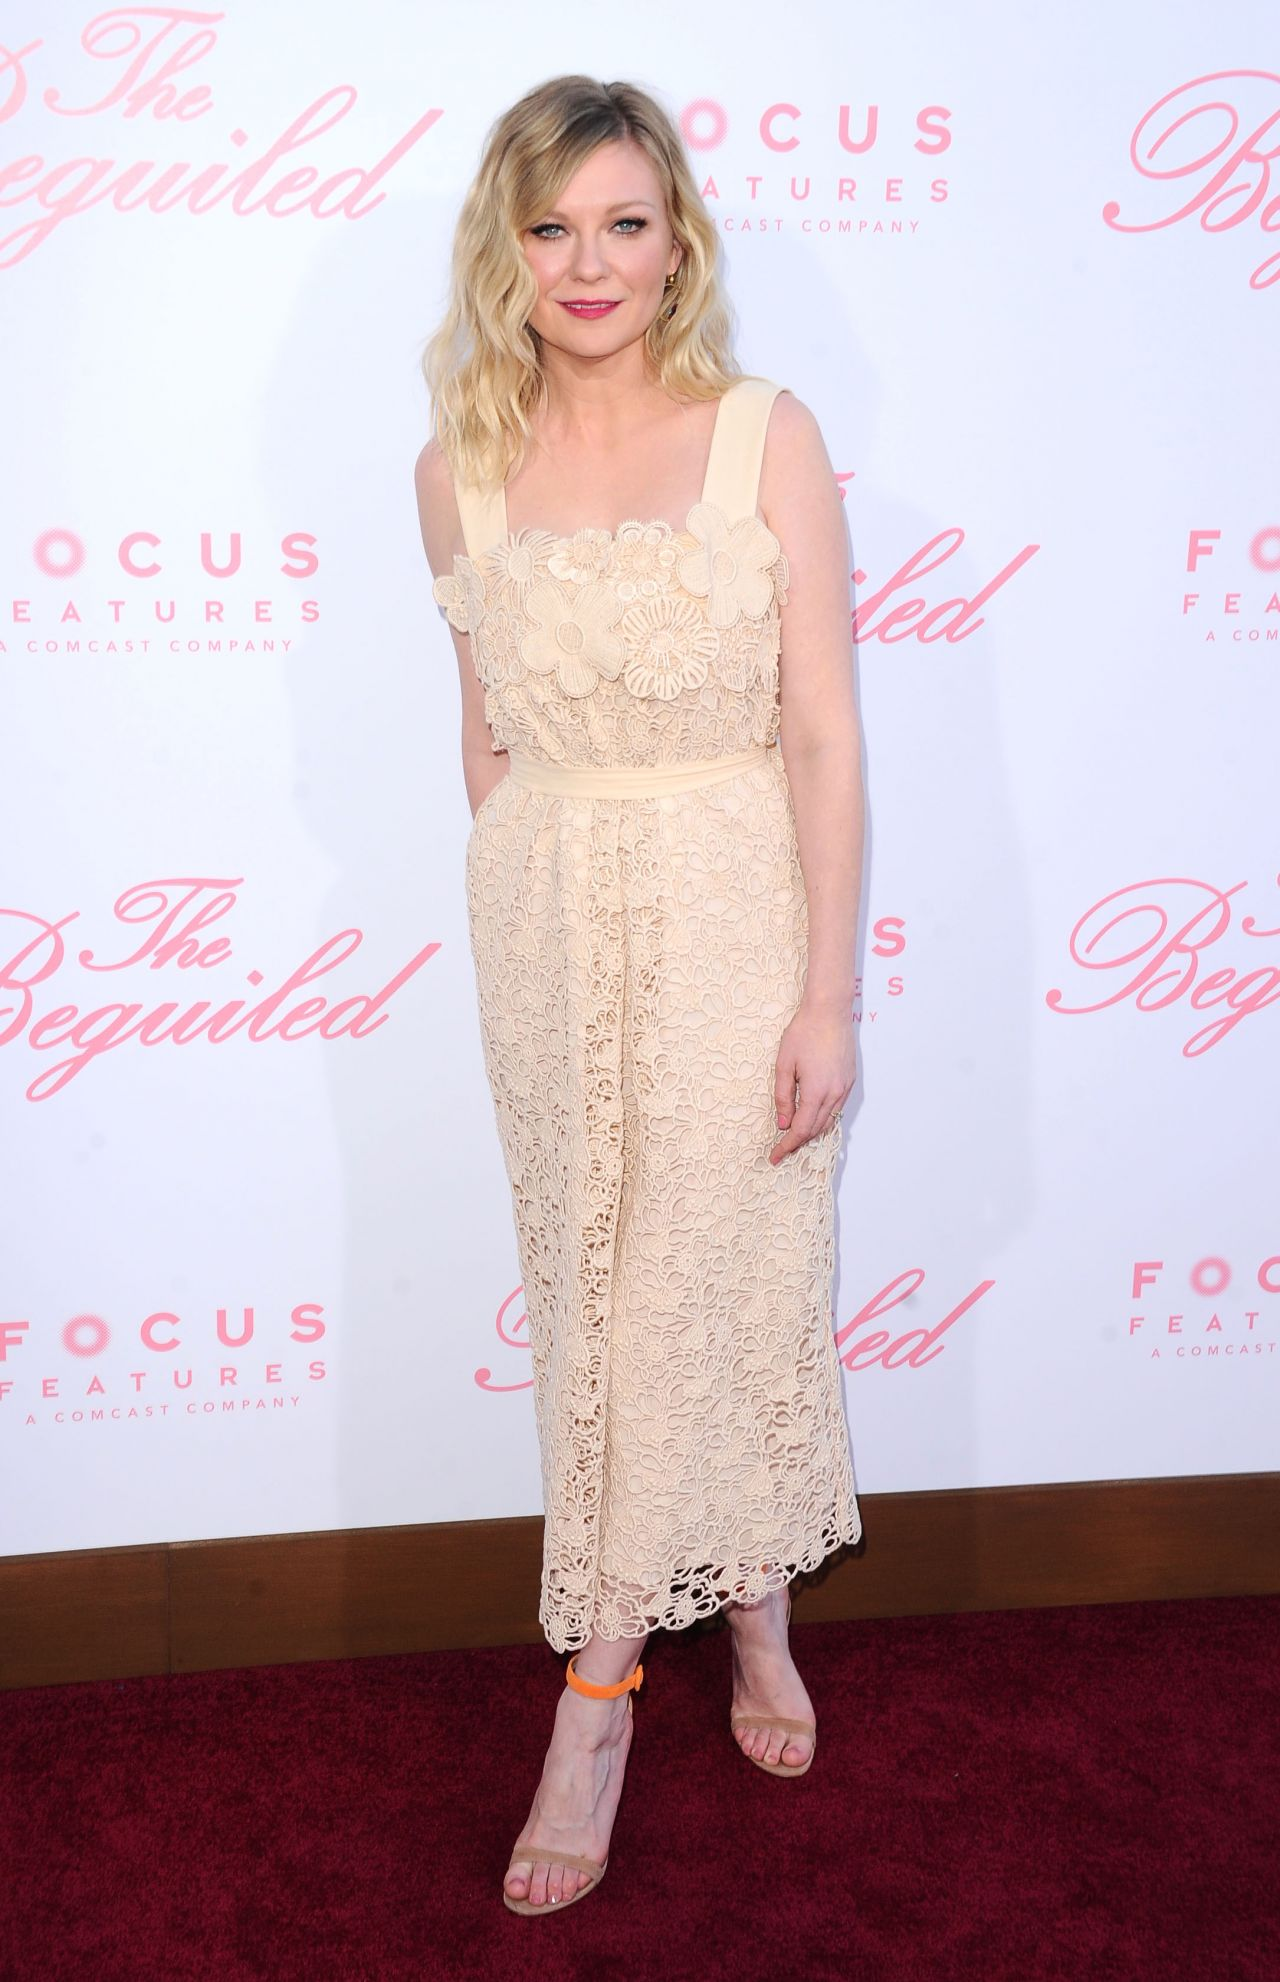 Kirsten dunst the beguiled movie premiere in new york